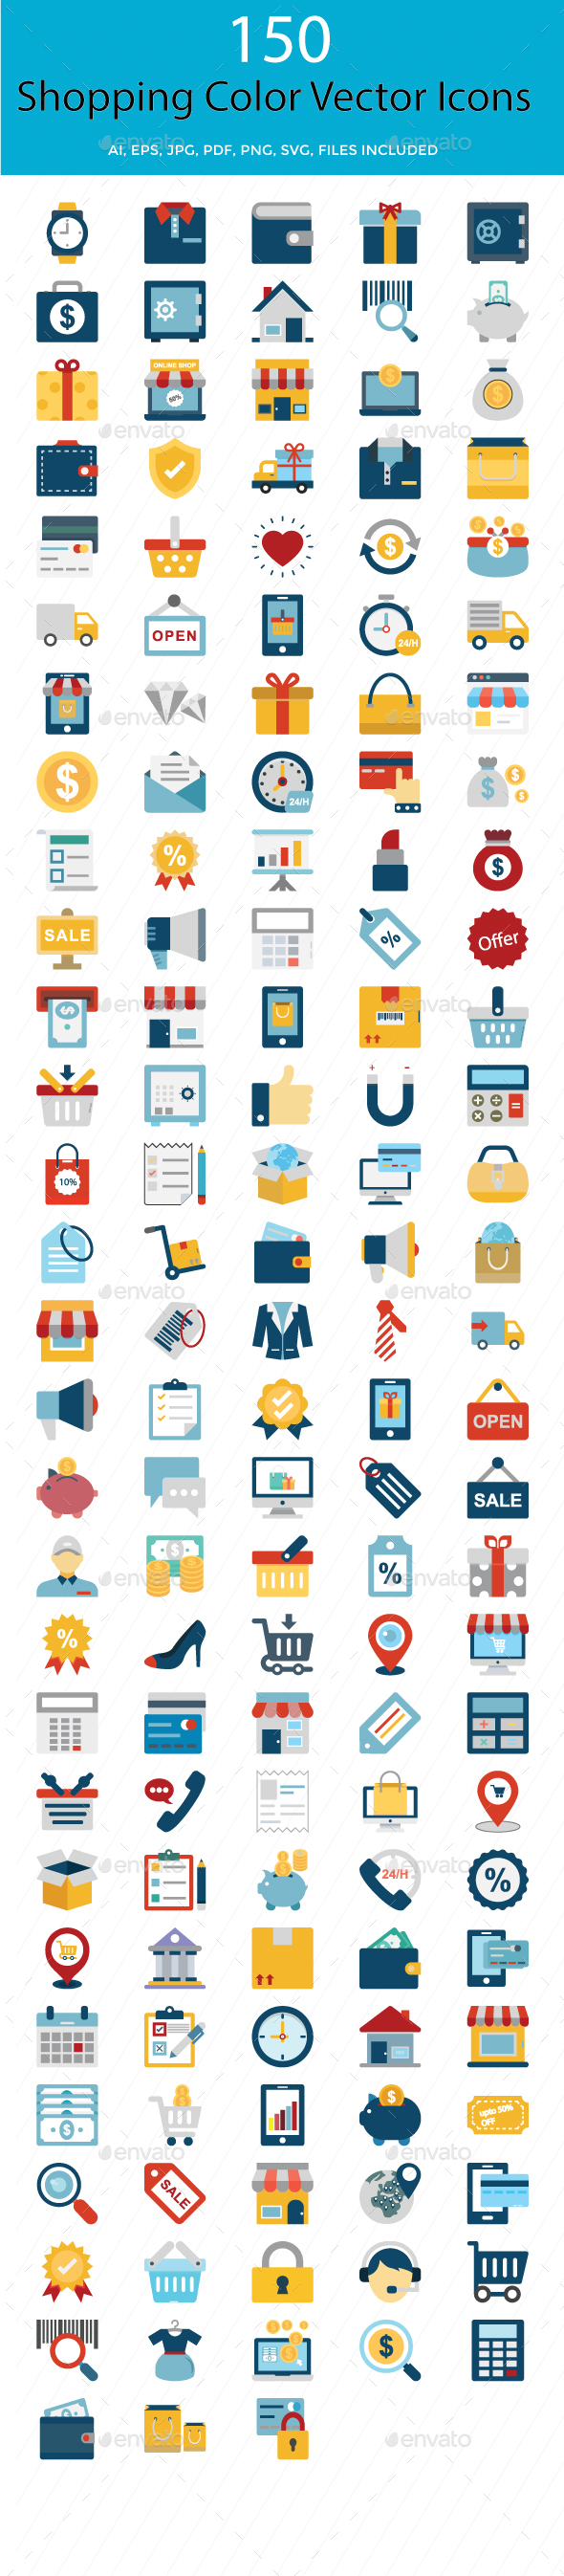 Shopping and E Commerce Color Vector Icons Set - Icons